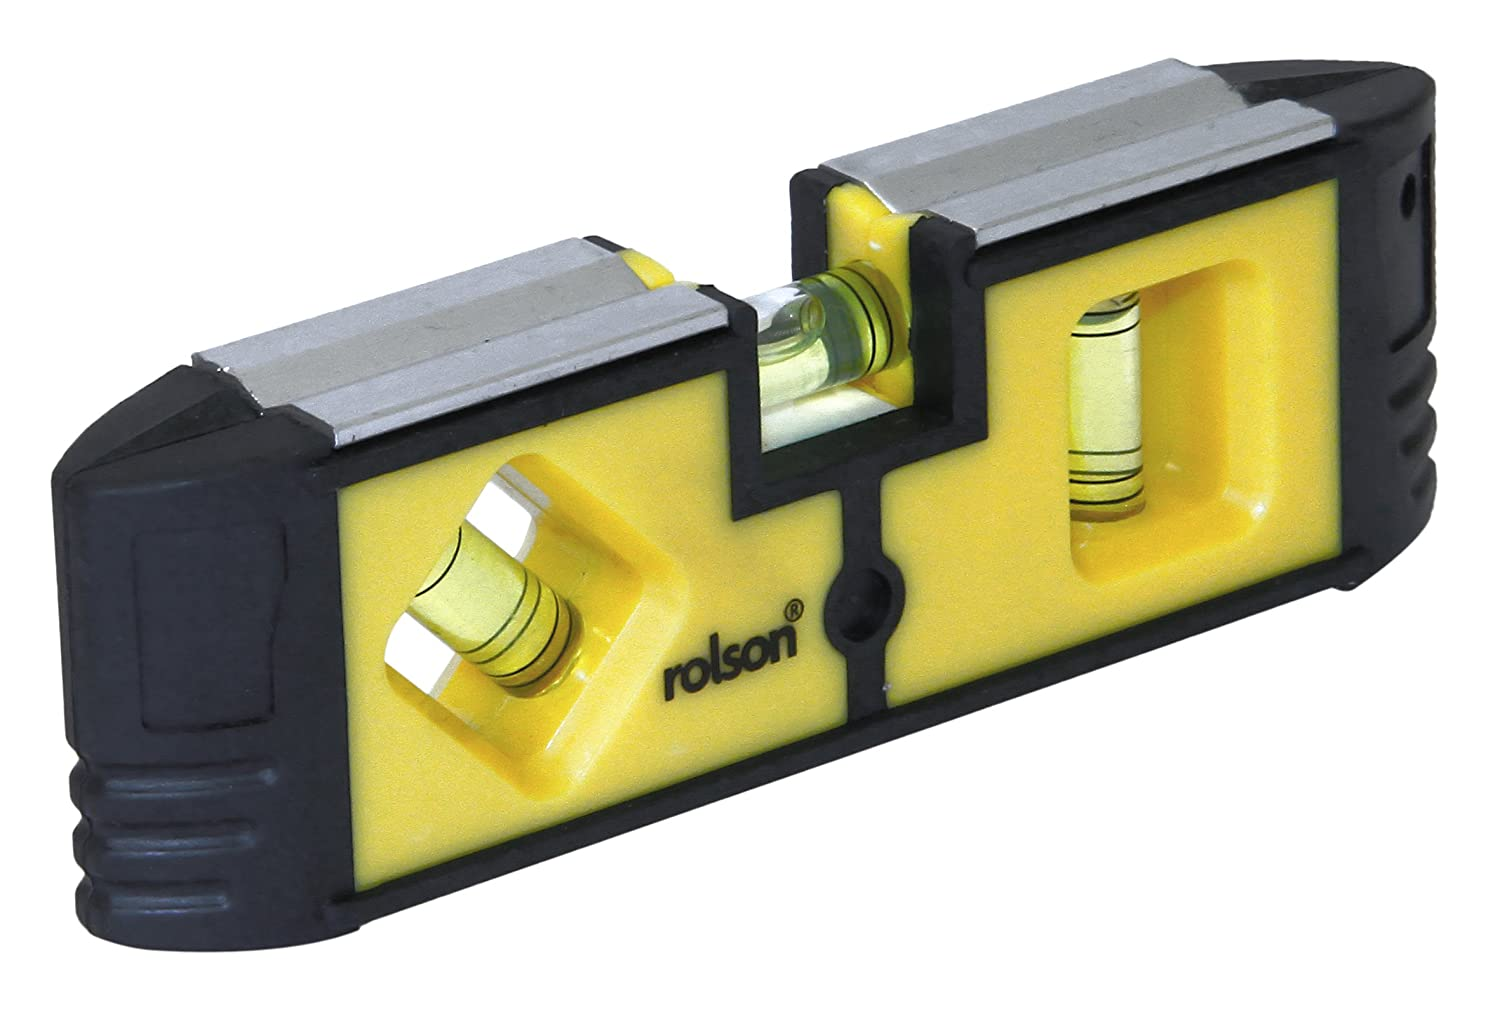 Rolson 54114 Mini Magnetic Level Multi-Colour